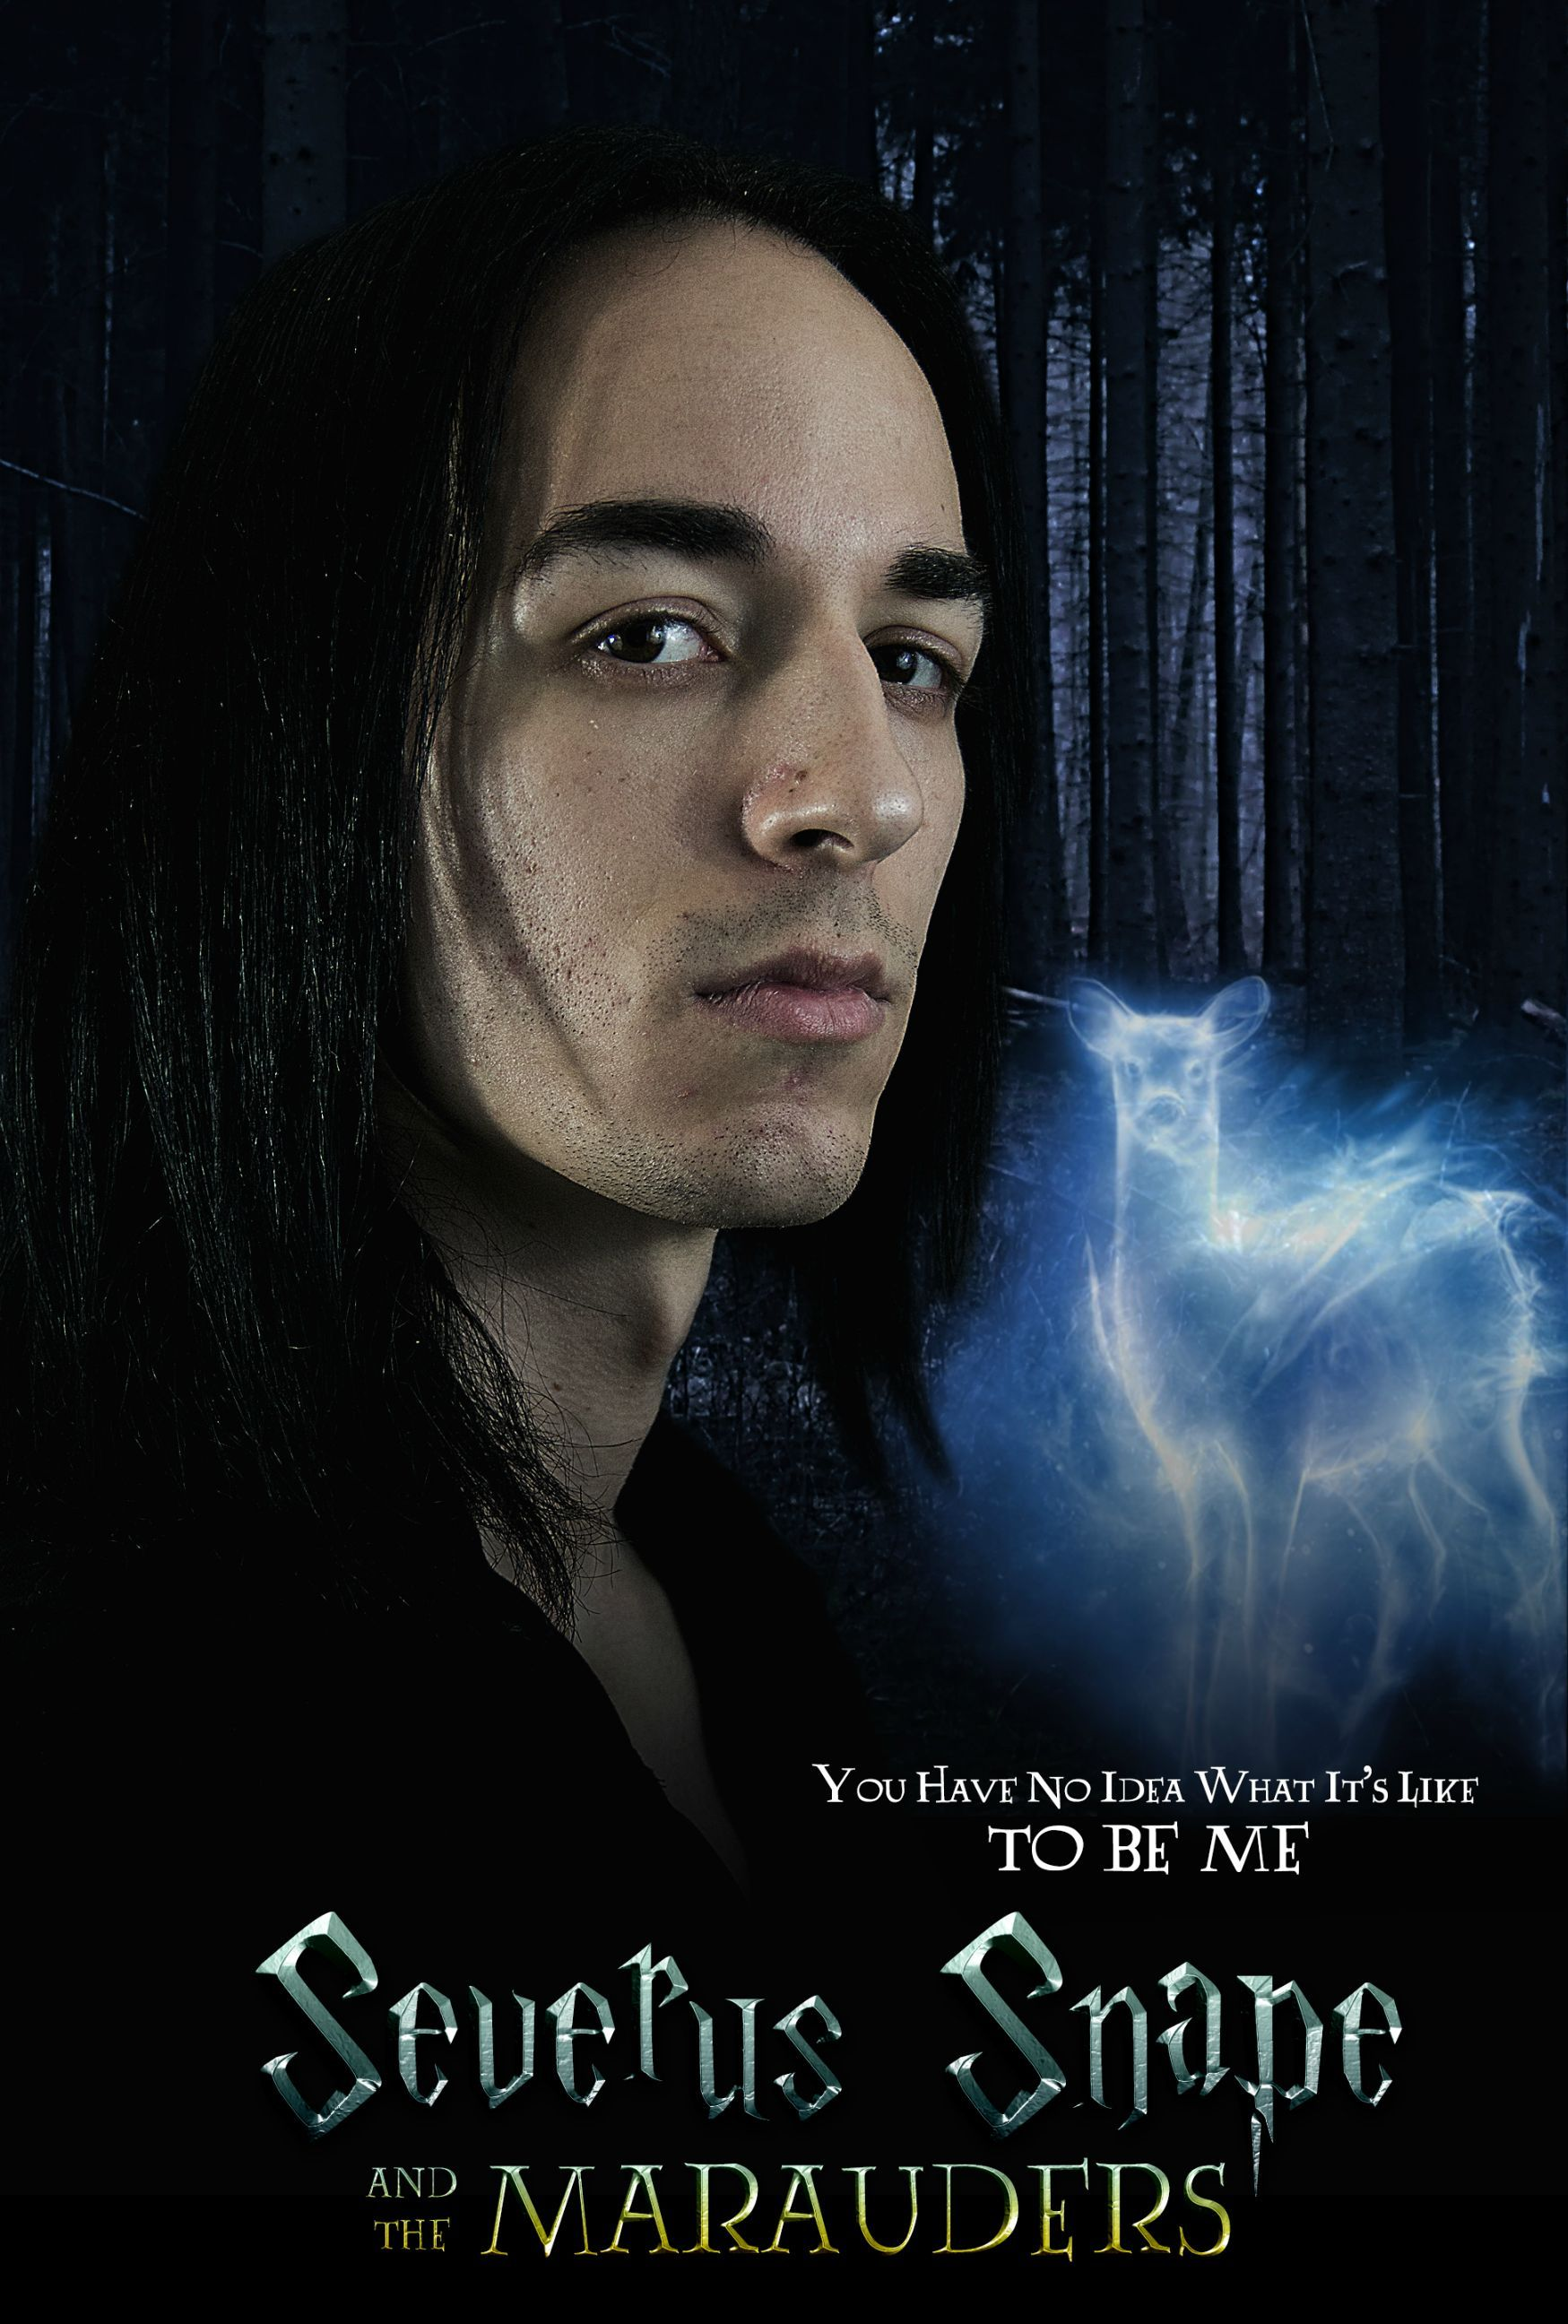 This fan film made me think about how I viewed Severus Snape